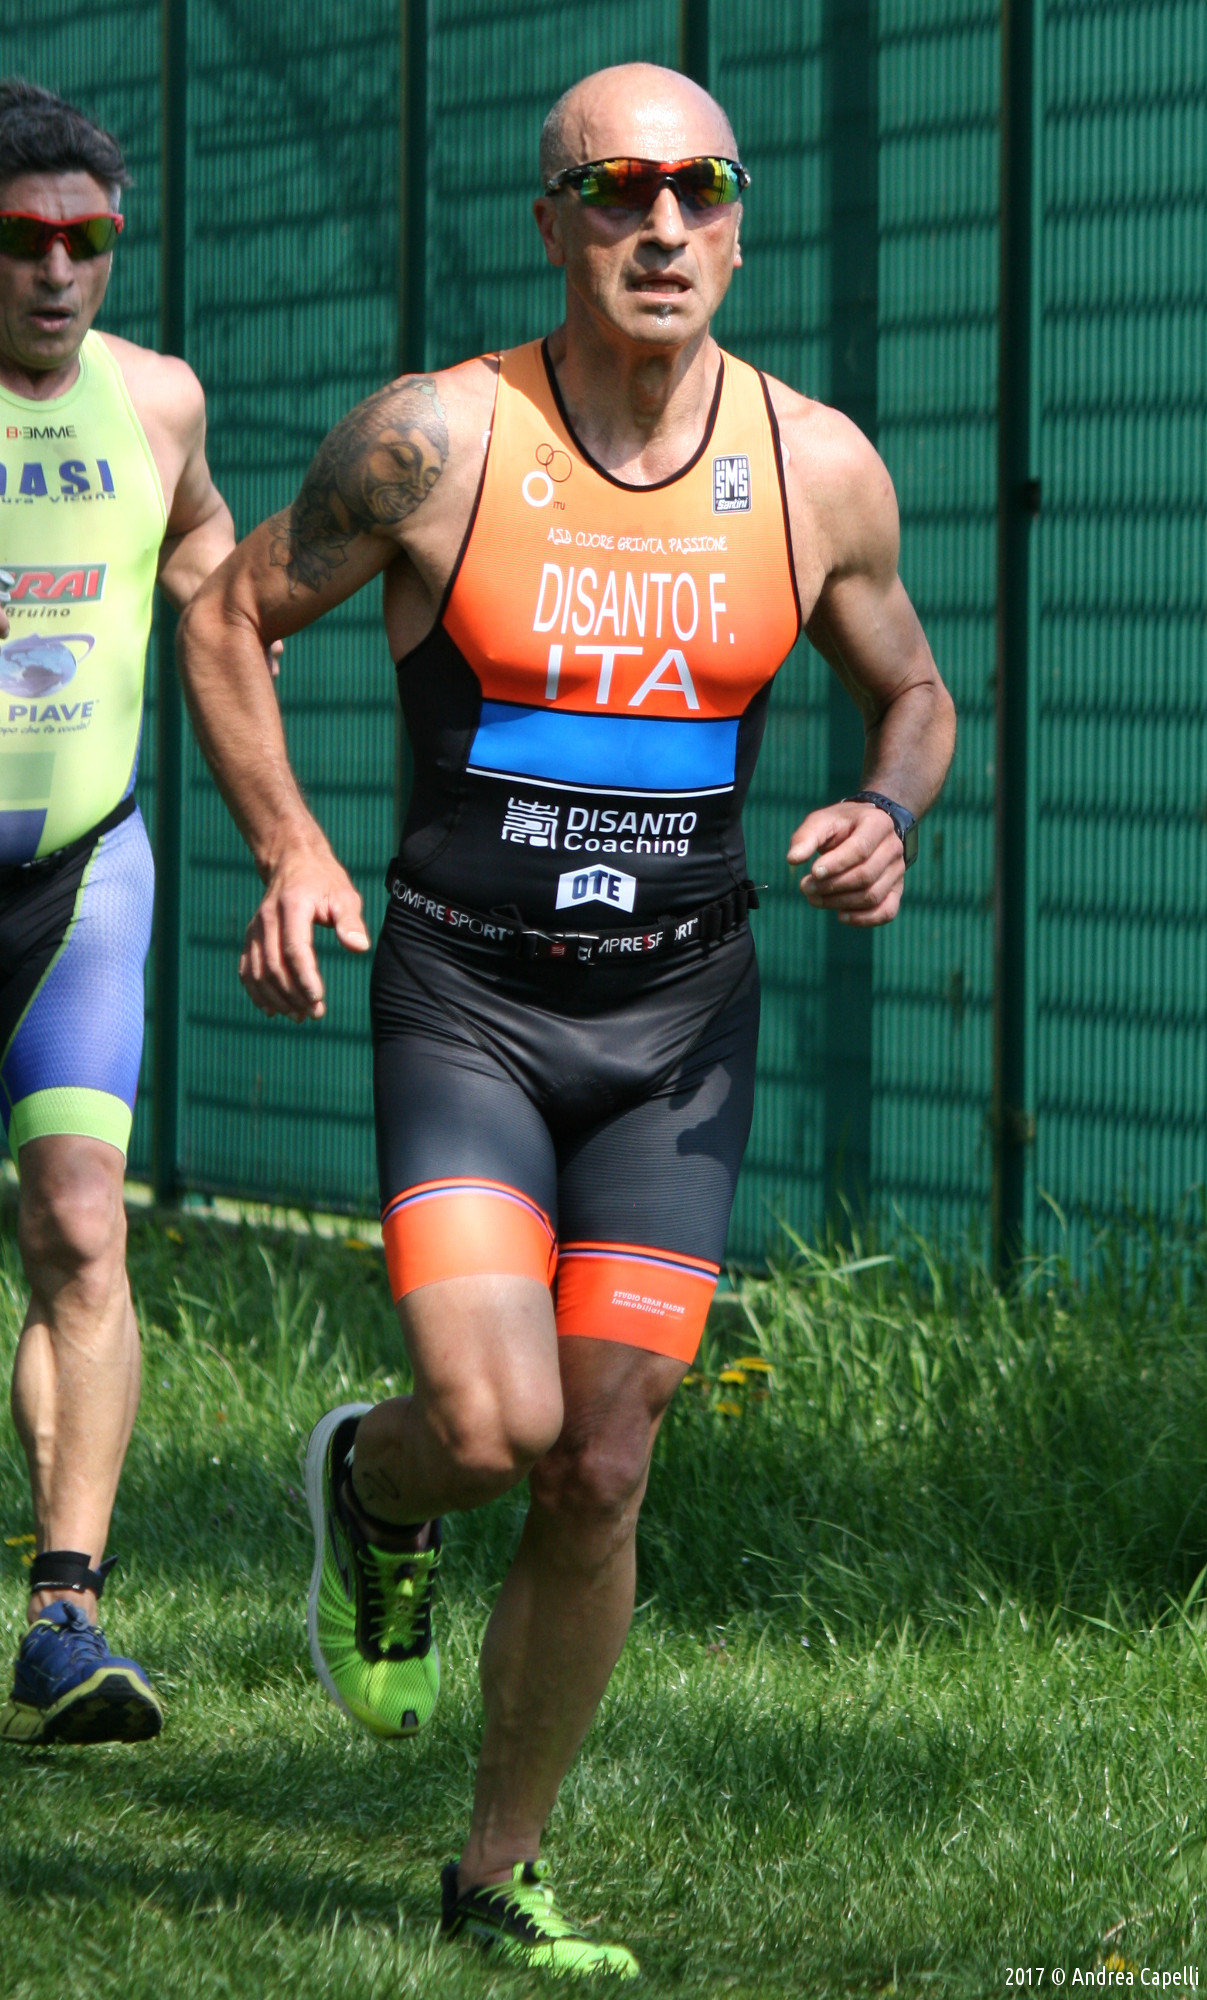 franco-disanto-triathlon